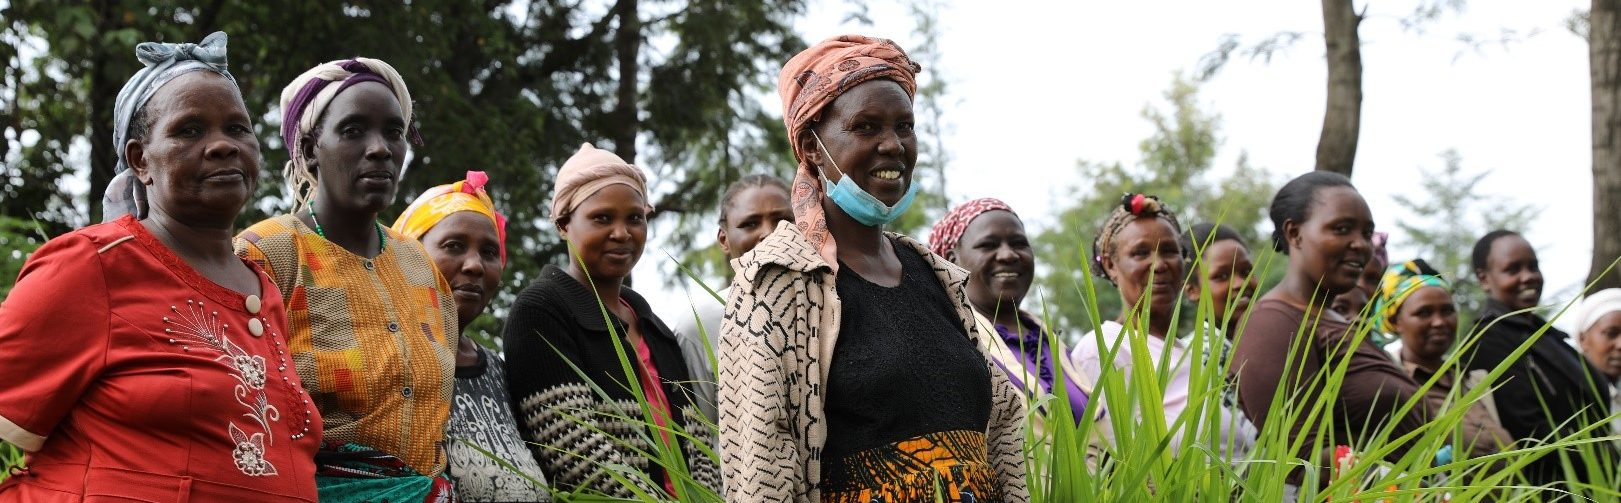 Two is better than one: Researching the gendered impacts of agricultural technology through storytelling